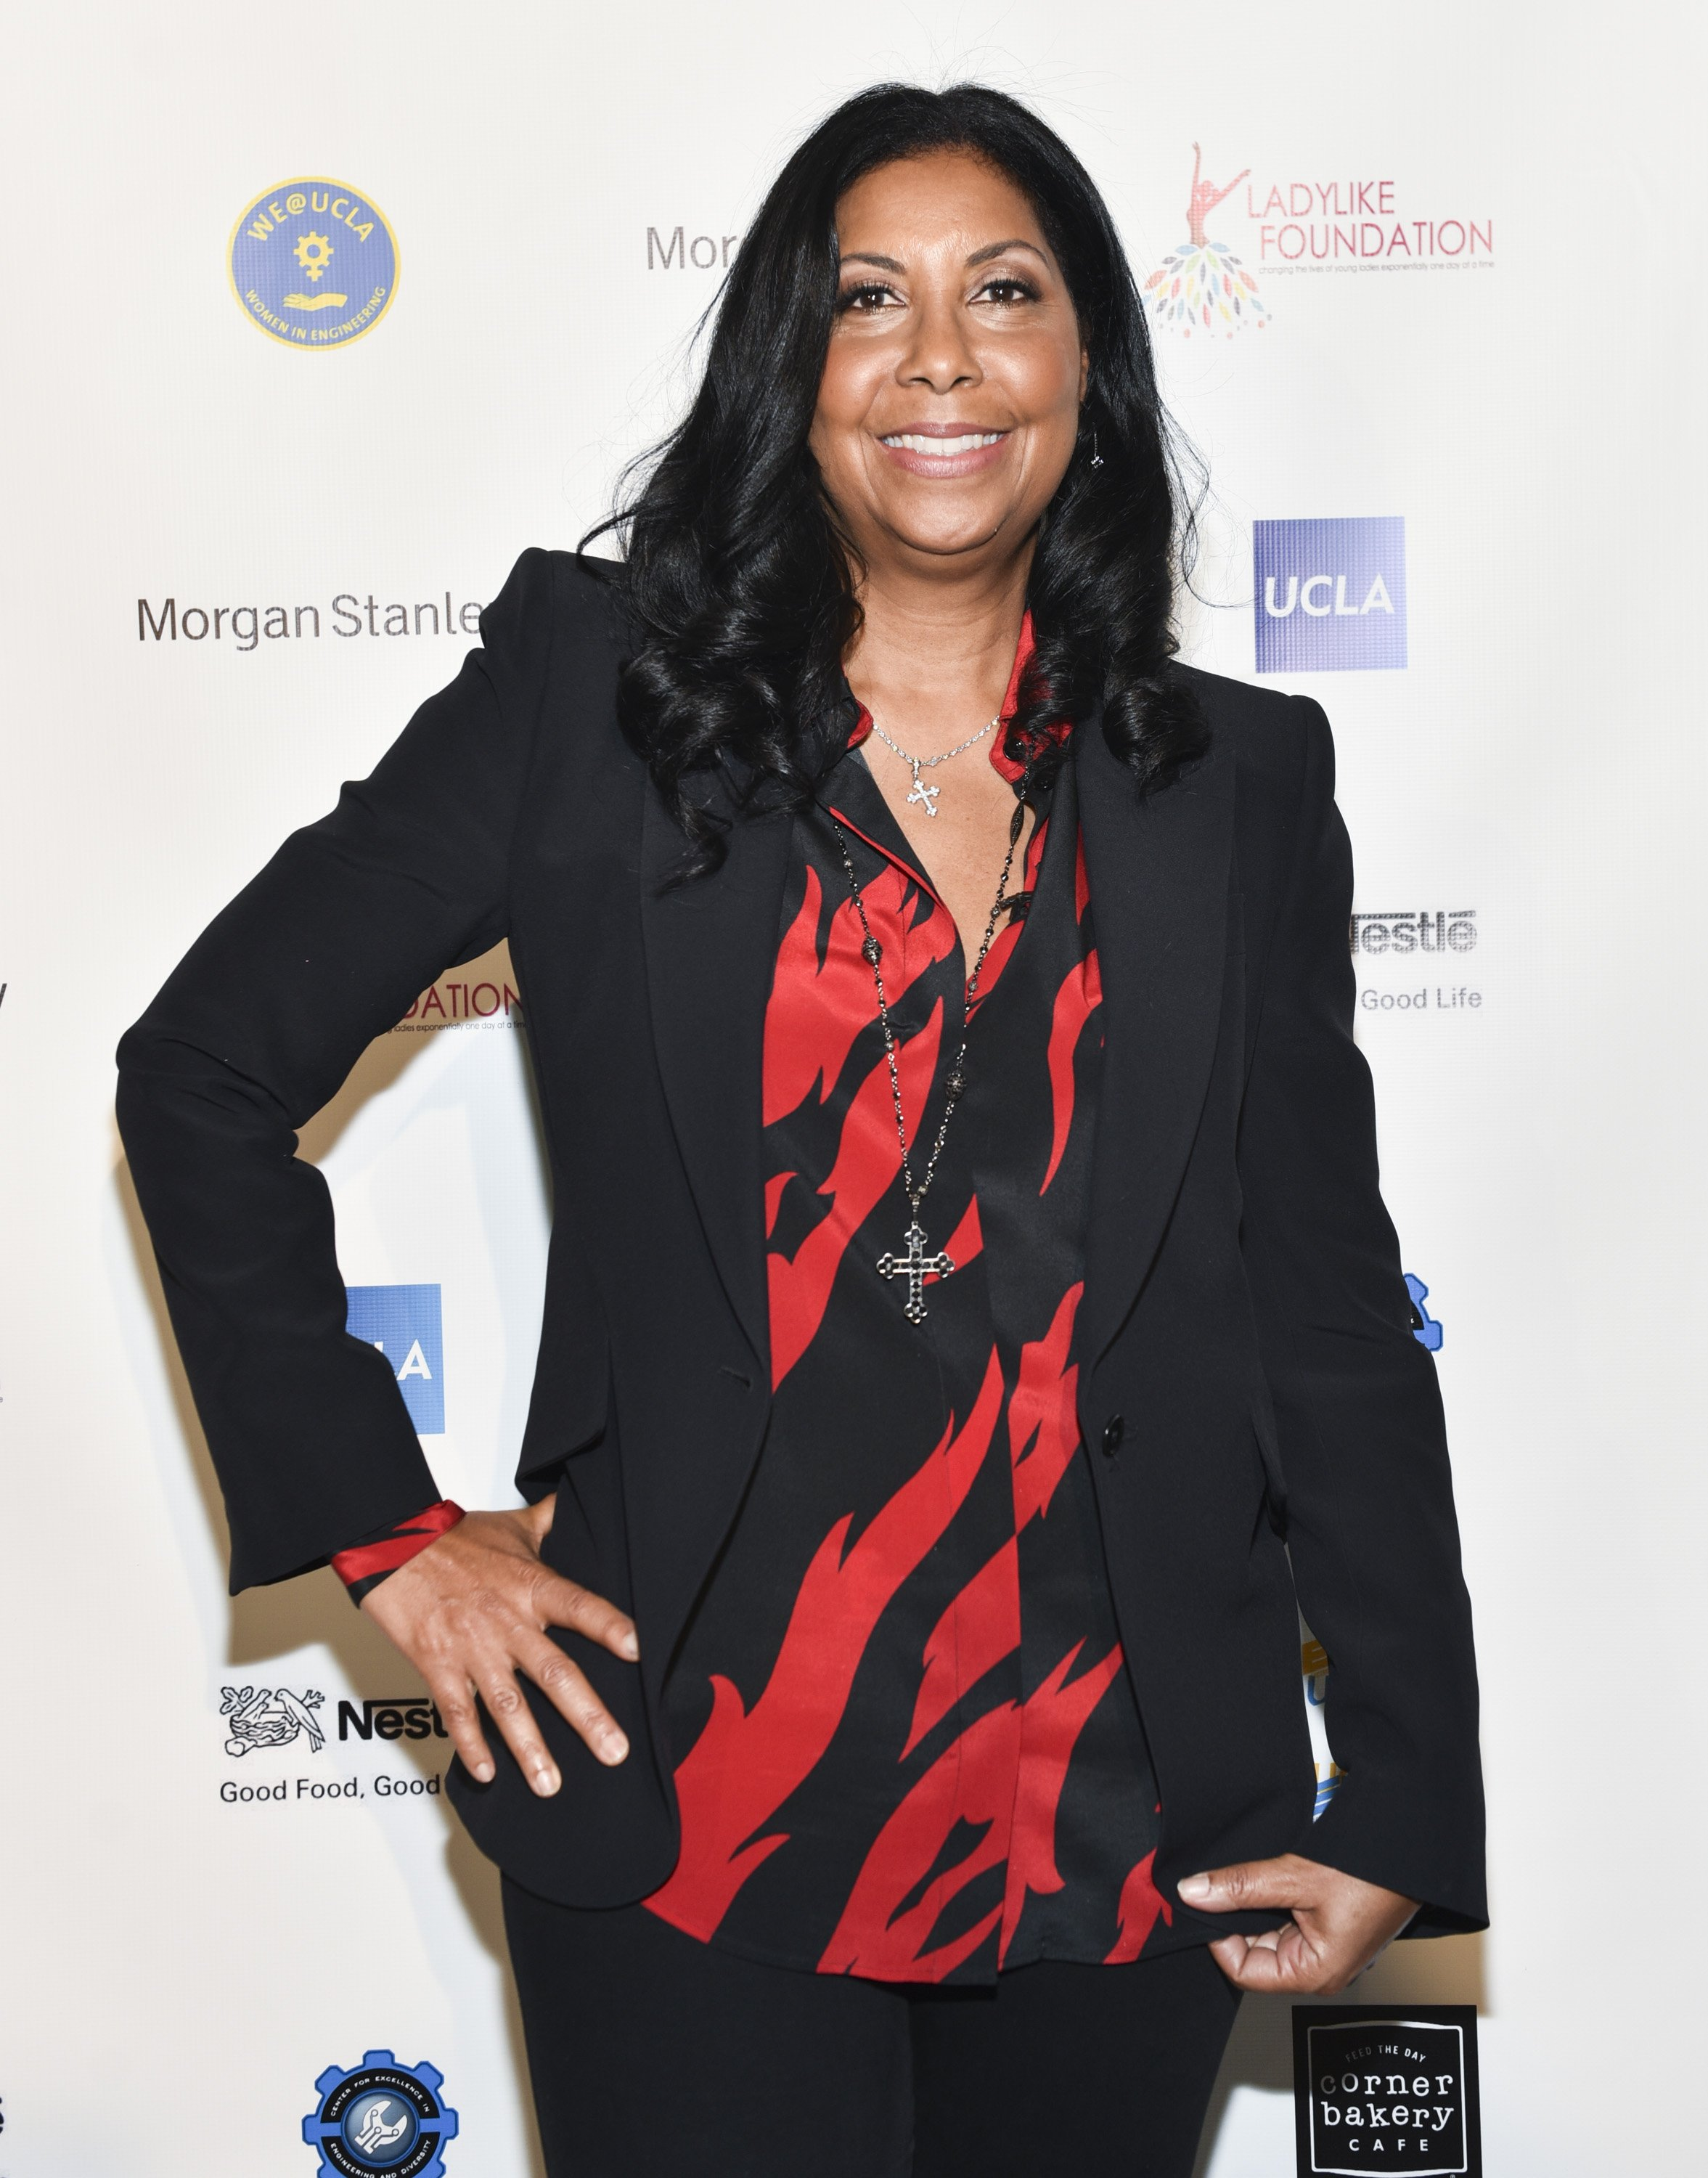 Cookie Johnson at the 6th Annual Ladylike Day at UCLA Panel and Program on Dec. 16, 2017 in California | Photo: Getty Images